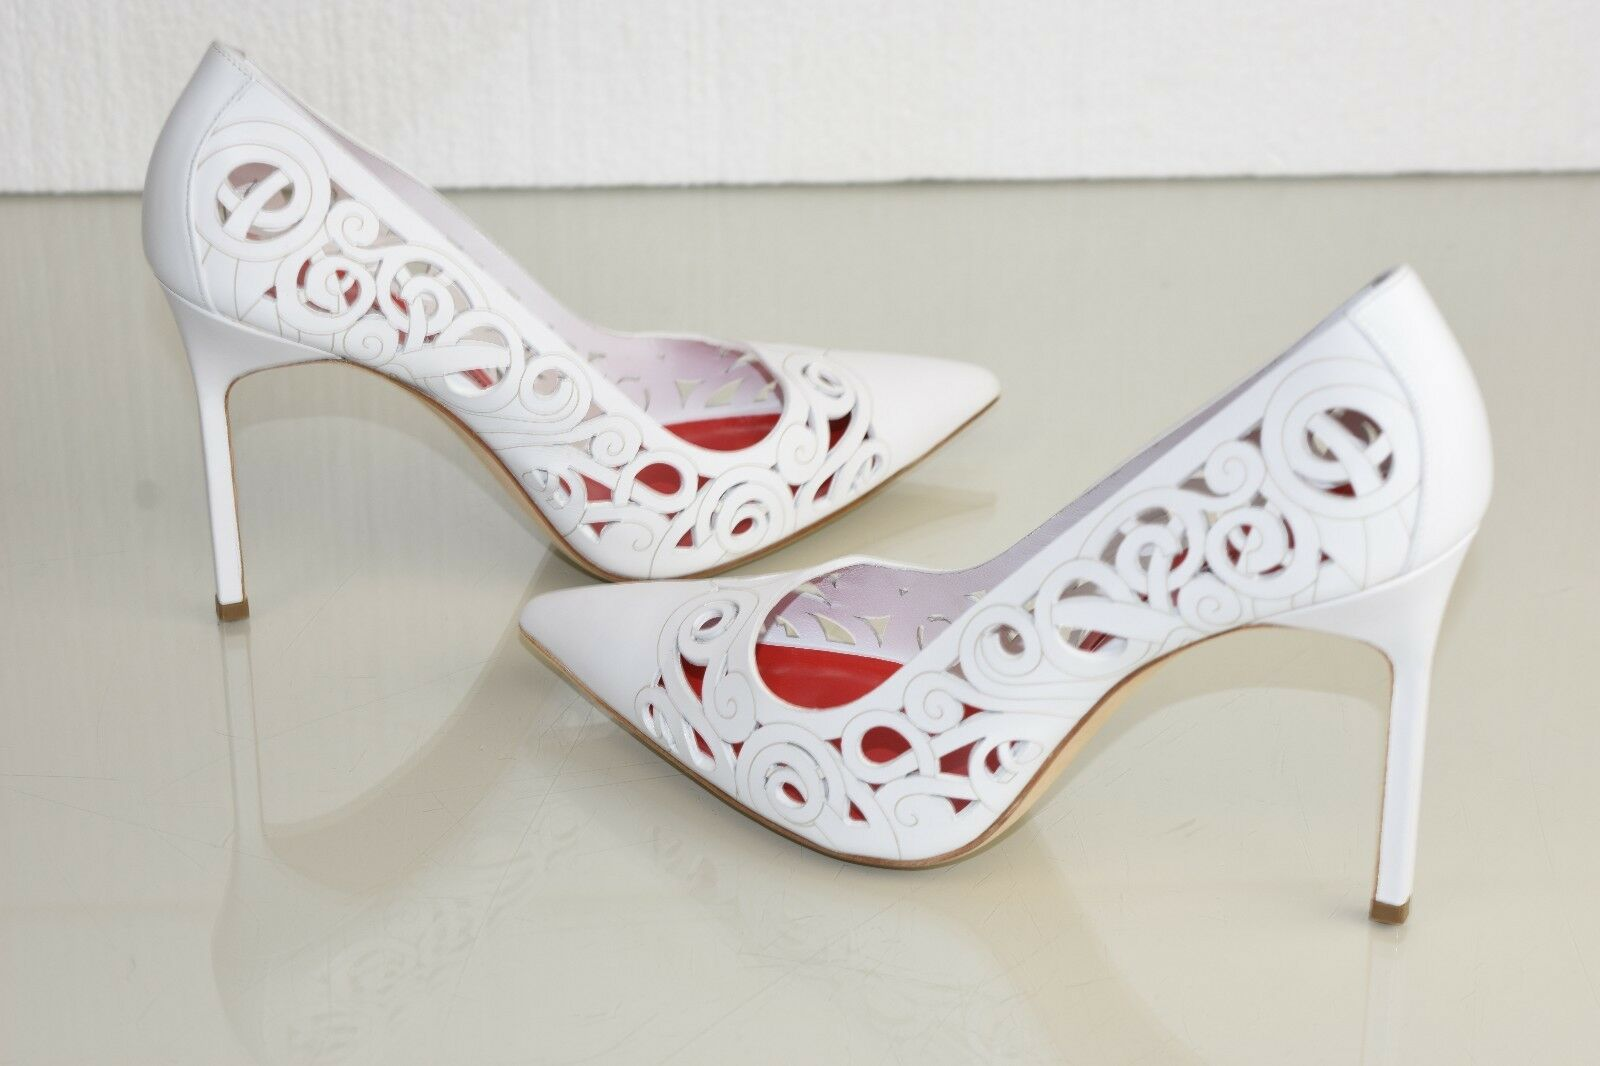 New MANOLO BLAHNIK BB ROCCO 105 White Red Leather Pumps shoes Heels 41